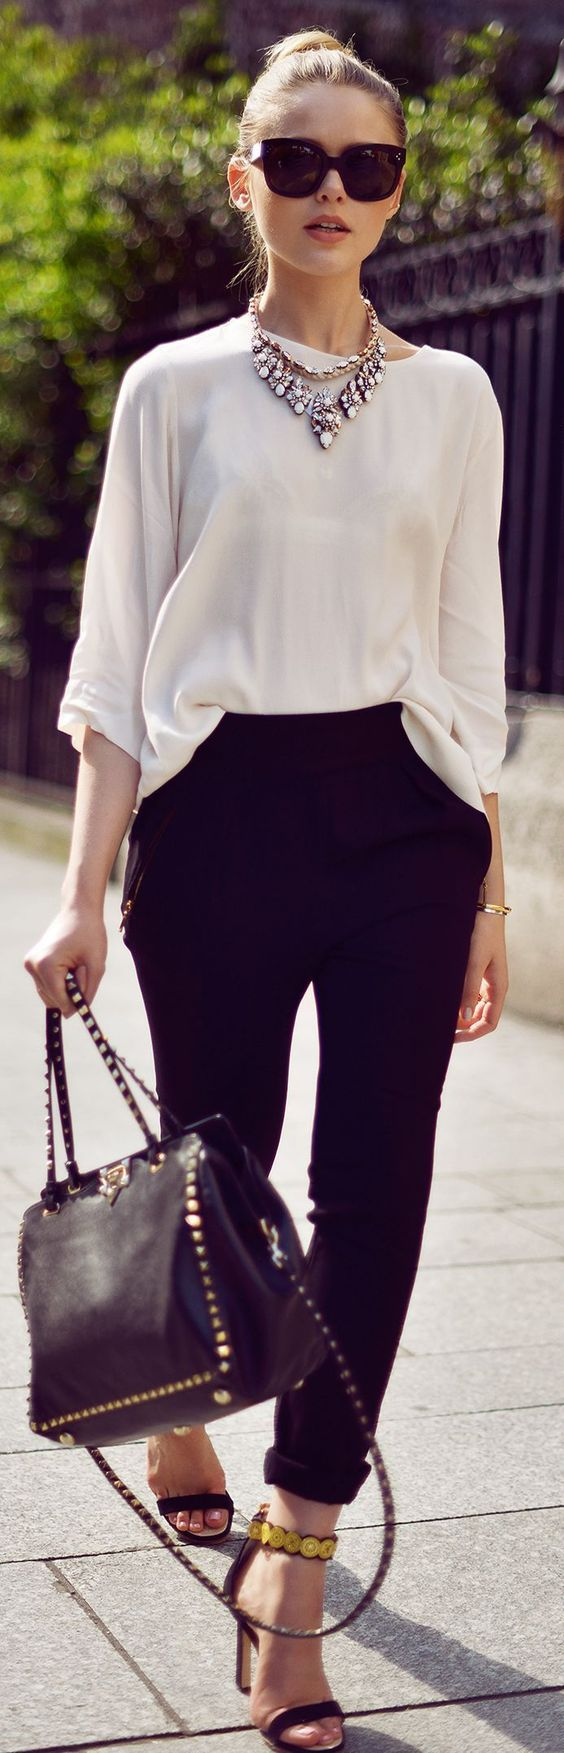 Chic office style with over-sized sunnies, statement necklace, and perfect black trousers.